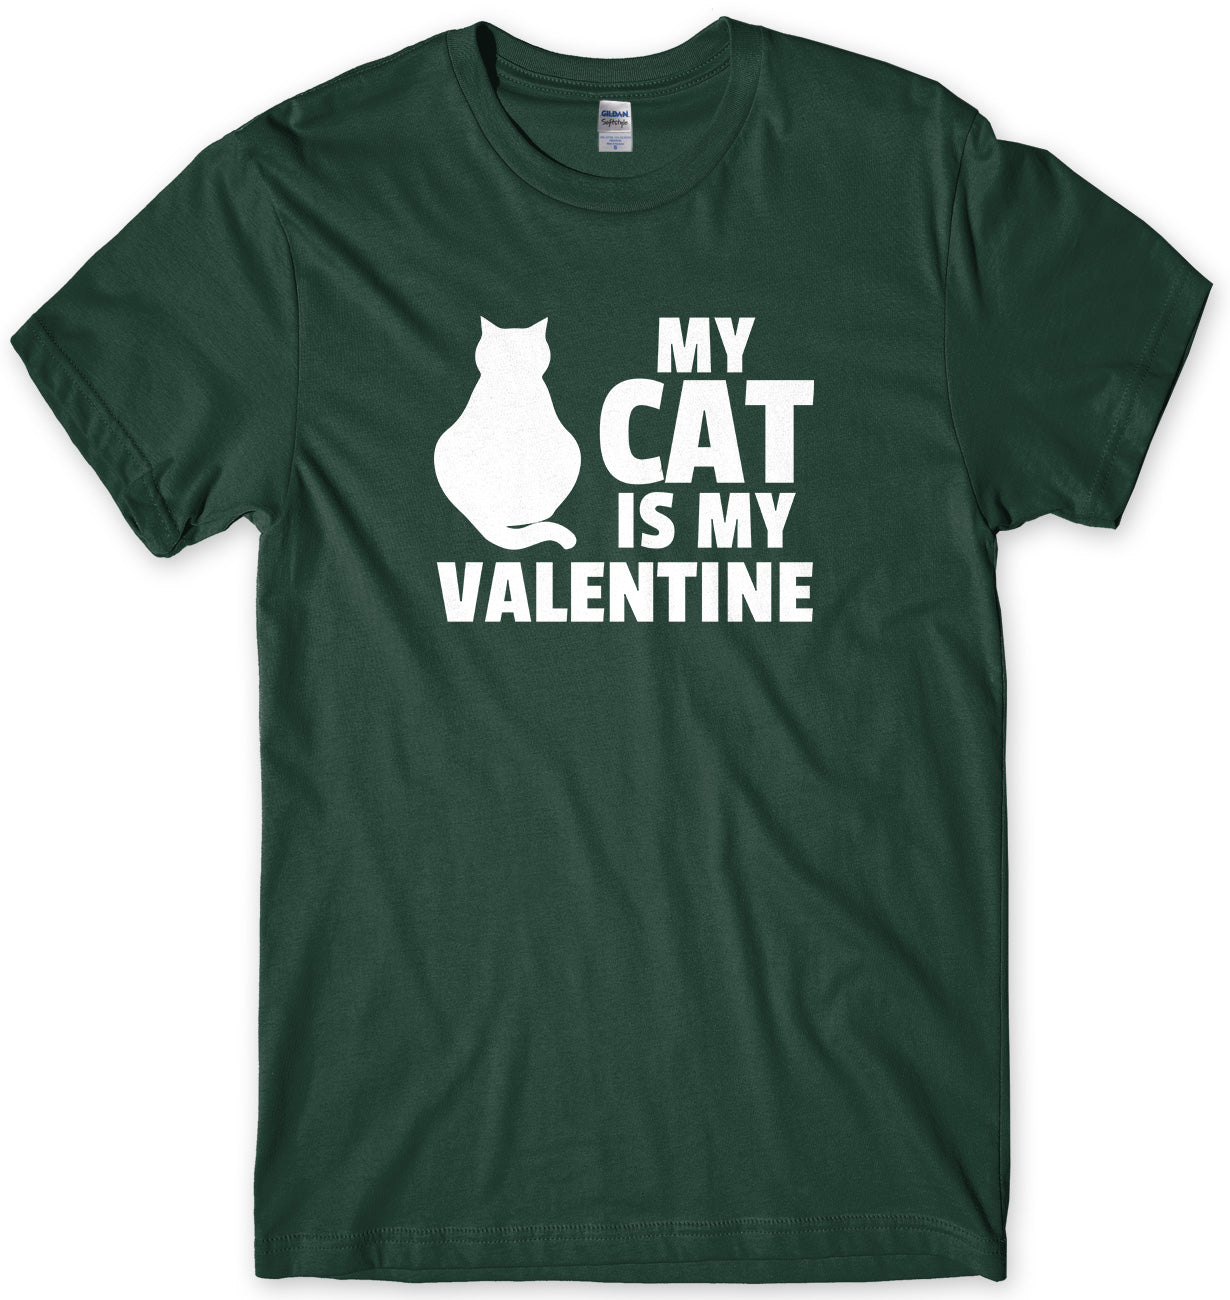 My Cat Is My Valentine Mens Unisex Style T-Shirt